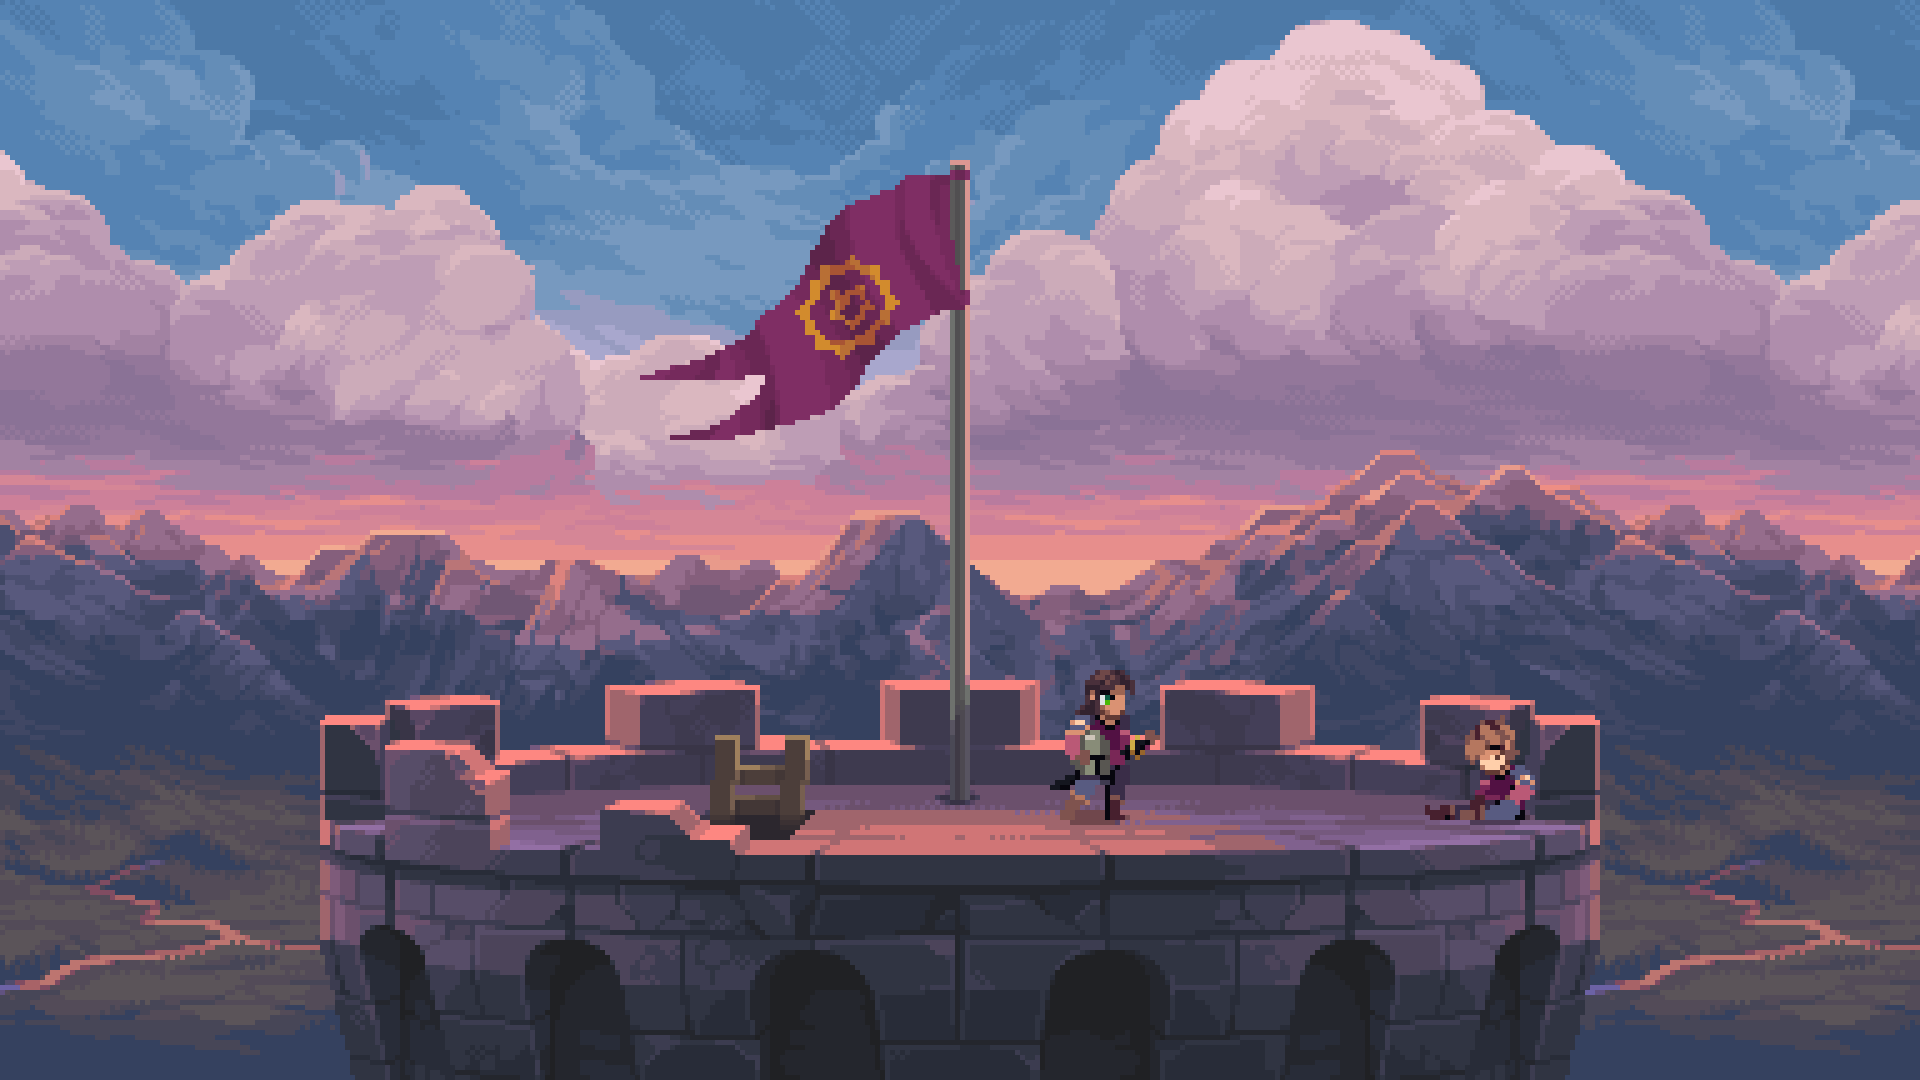 Intro scene to the Chasm video game